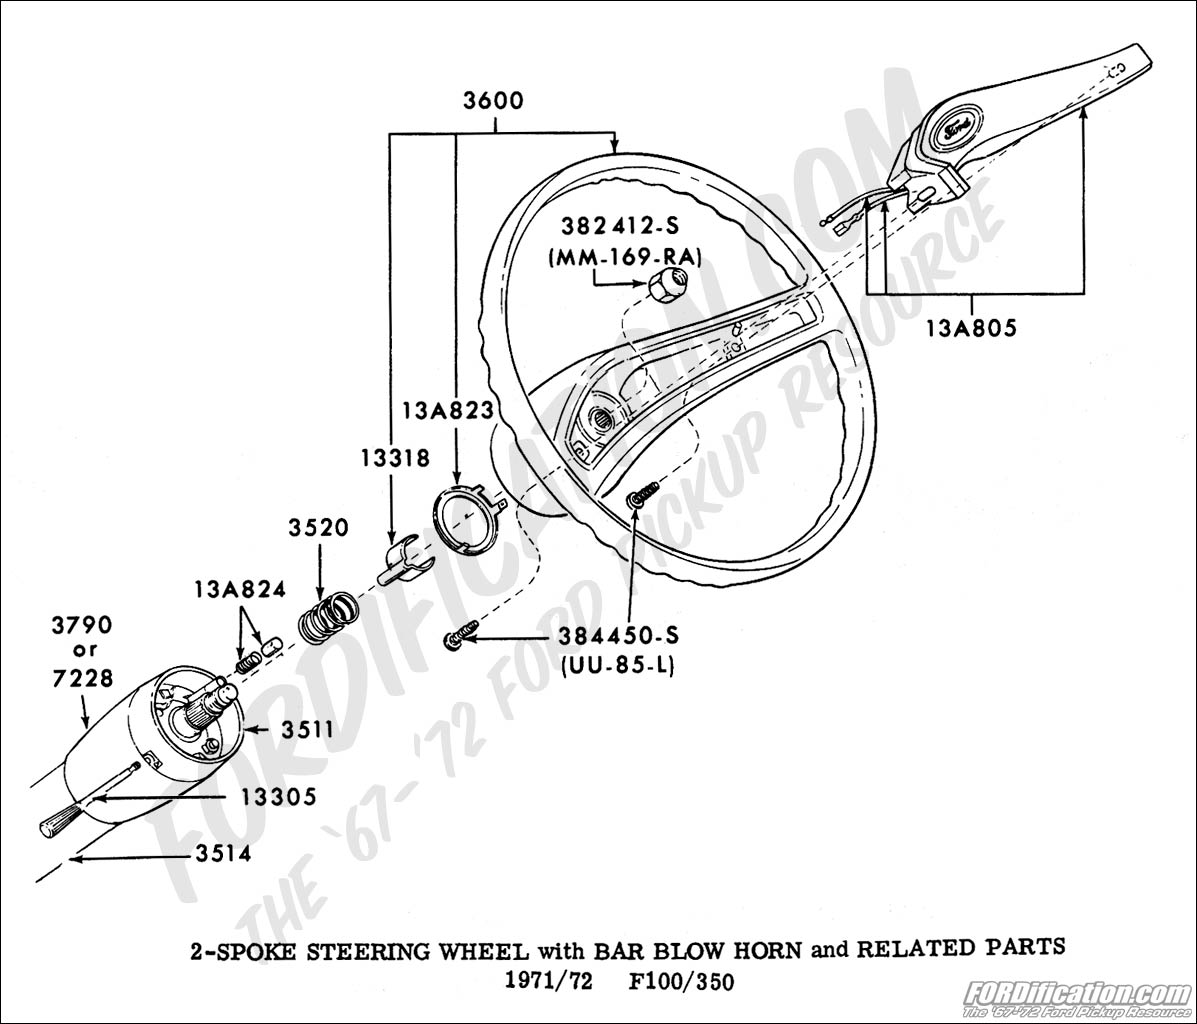 1972 Ford F100 Ignition Switch Wiring Diagram 45 Truck Steeringwheel 7172 Technical Drawings And Schematics Section I 1971